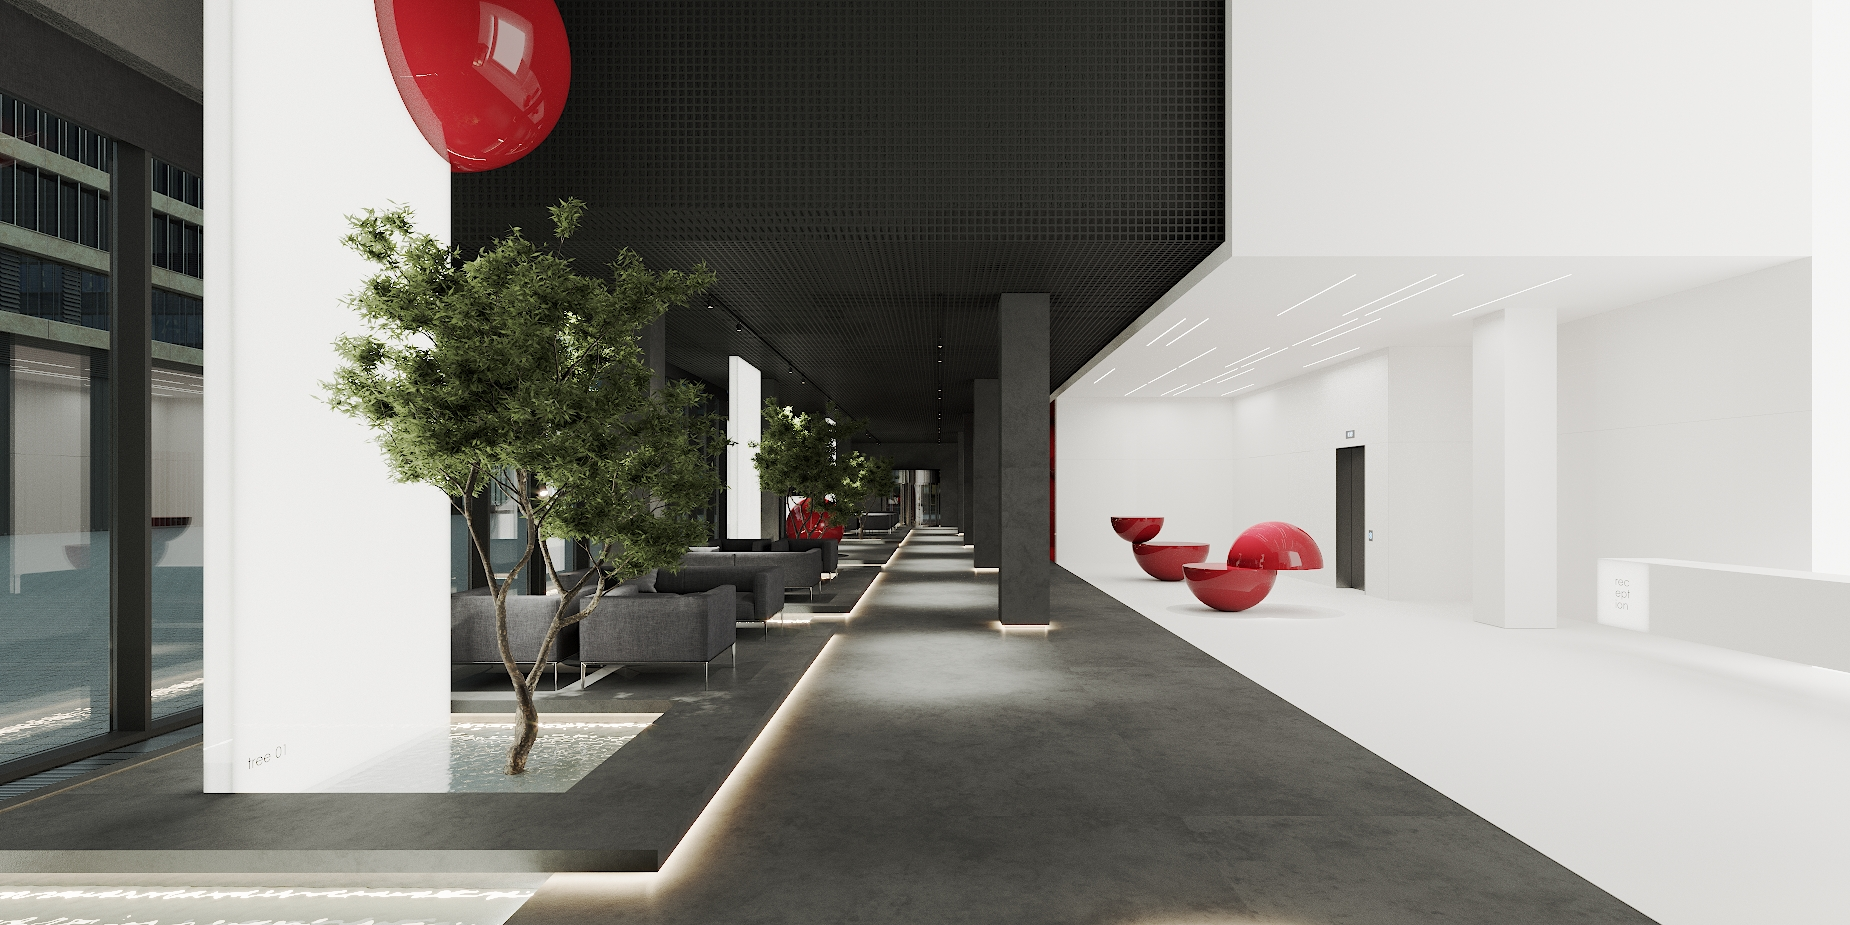 Concept Hall B12 Business Campus in Unit. City ccc 1 VAR 2